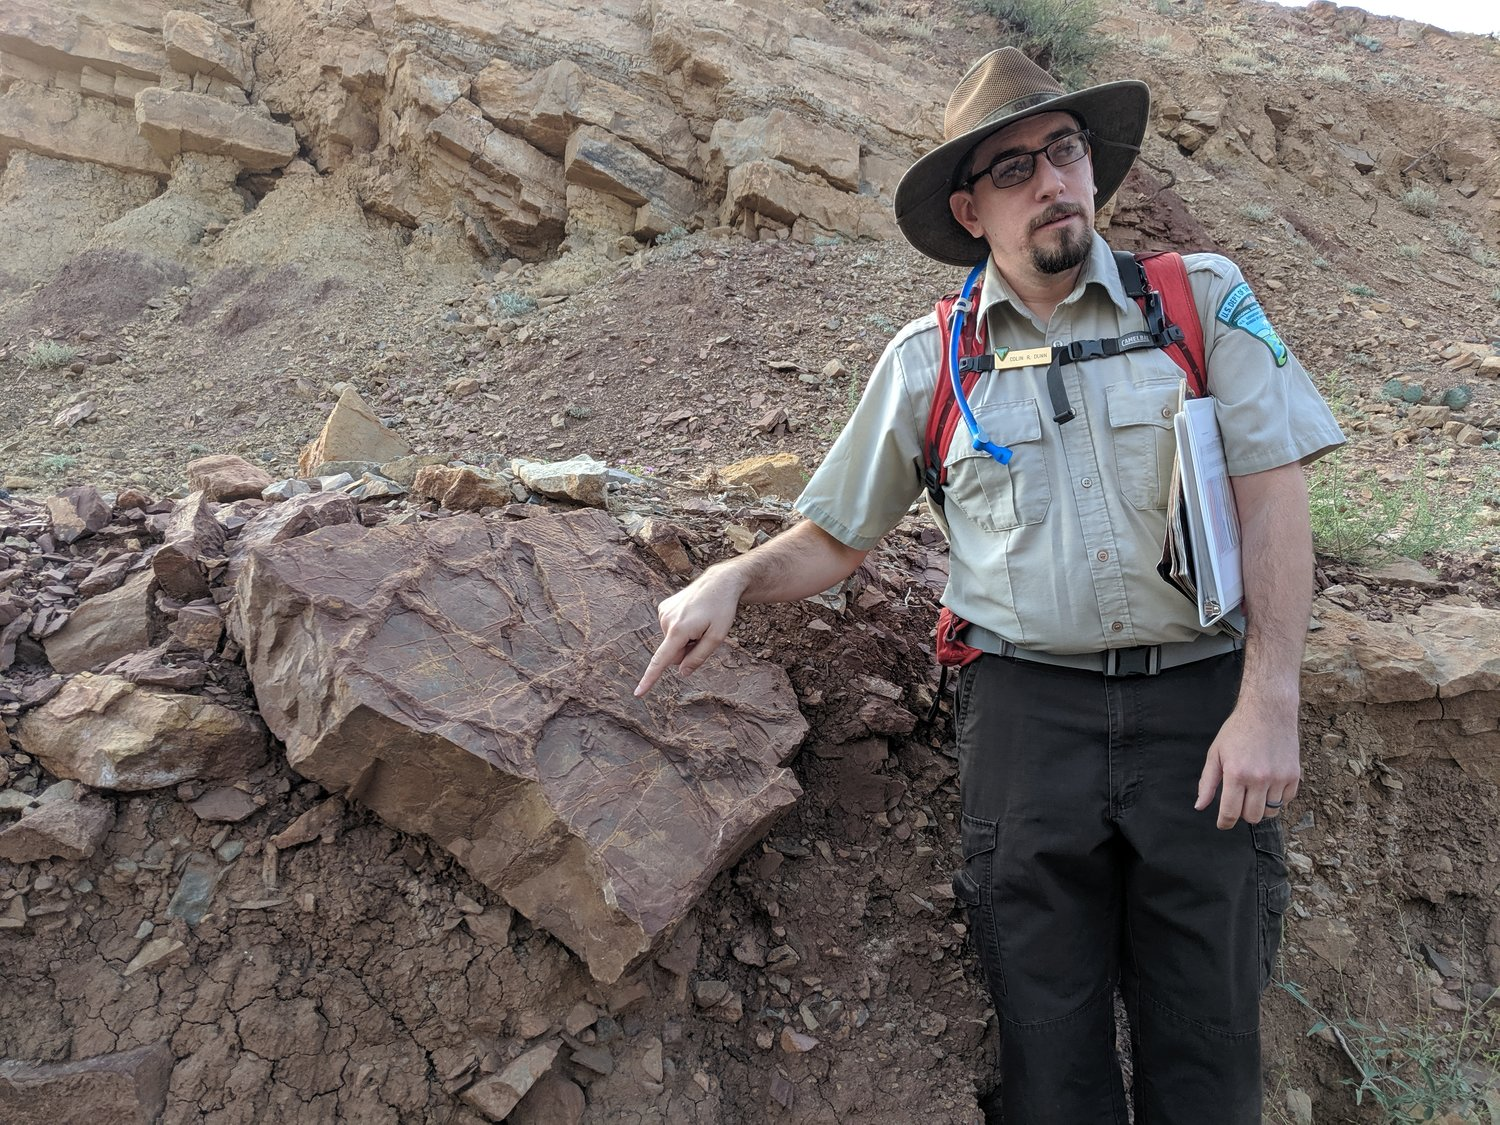 Paleontologist Colin Dunn leads guided hikes at Prehistoric Trackways National Monument every third Saturday. Here, he talks about some of the things you can find on the way to the Discovery Site.